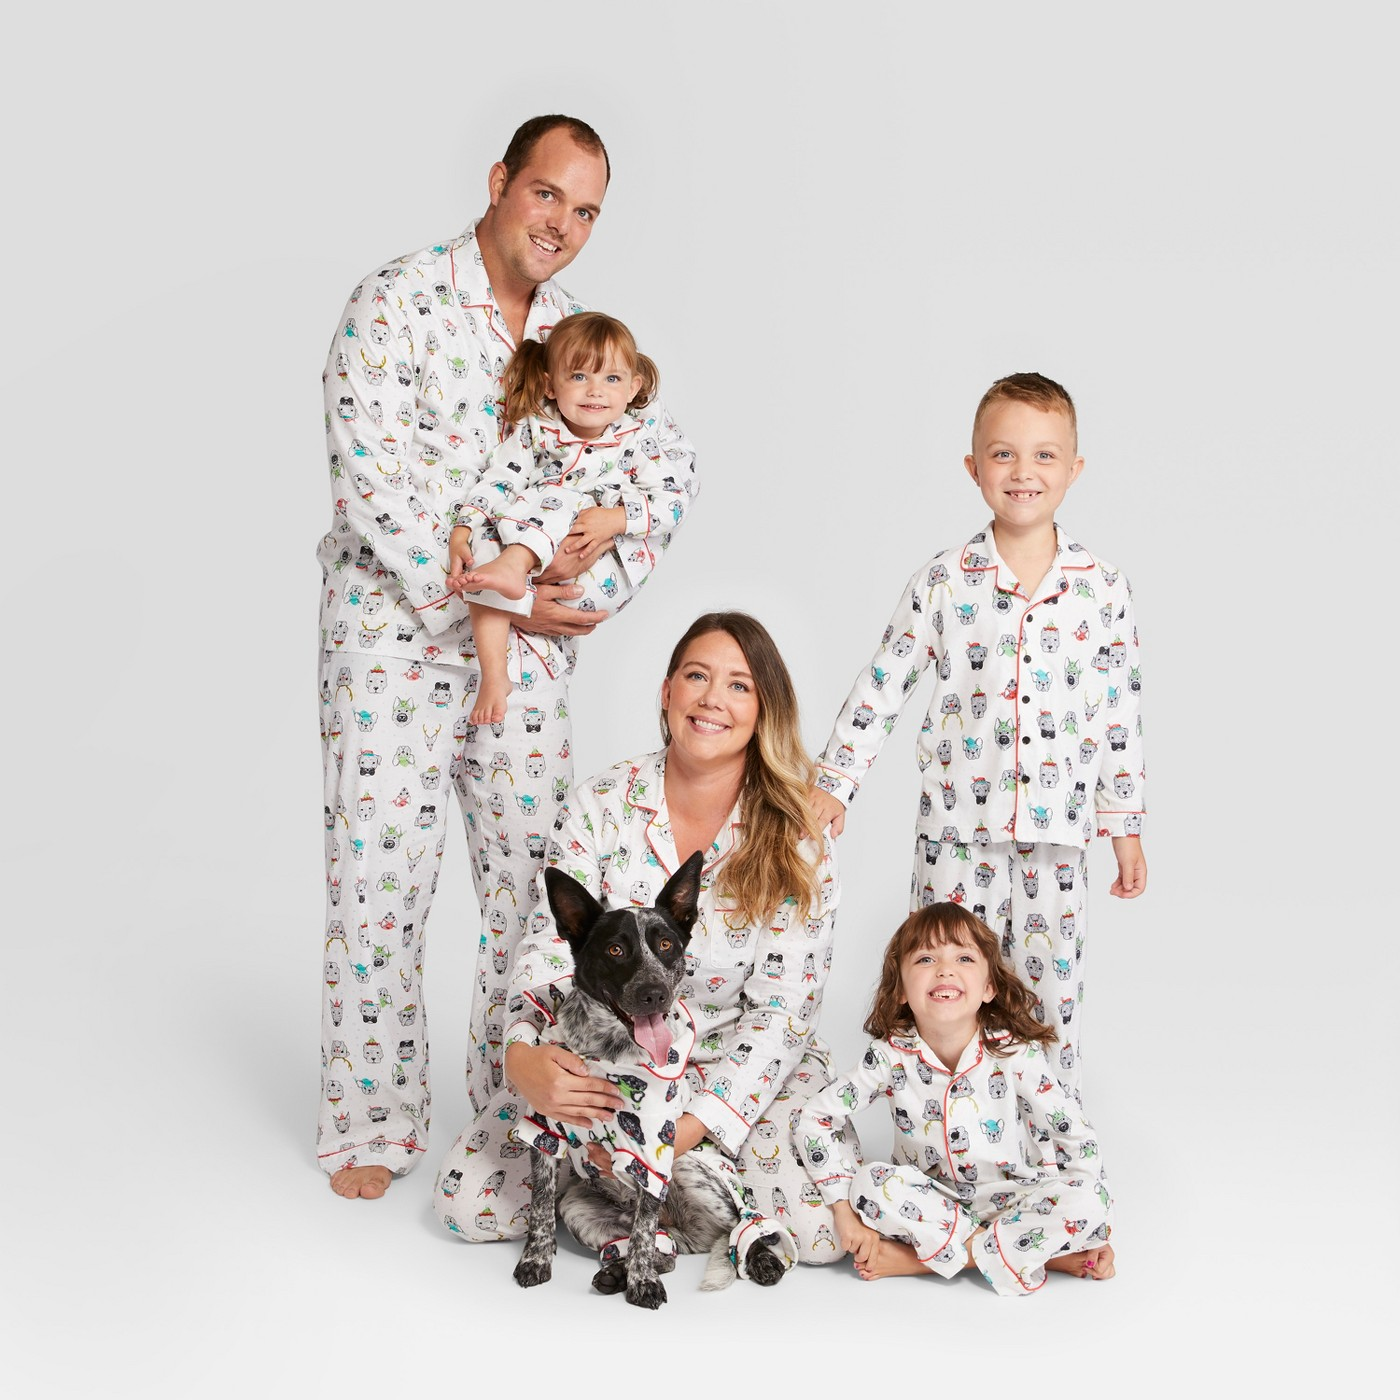 Family Christmas pajamas - love the dog pajamas kellyelko.com #christmaspajamas #christmas #christmastraditions